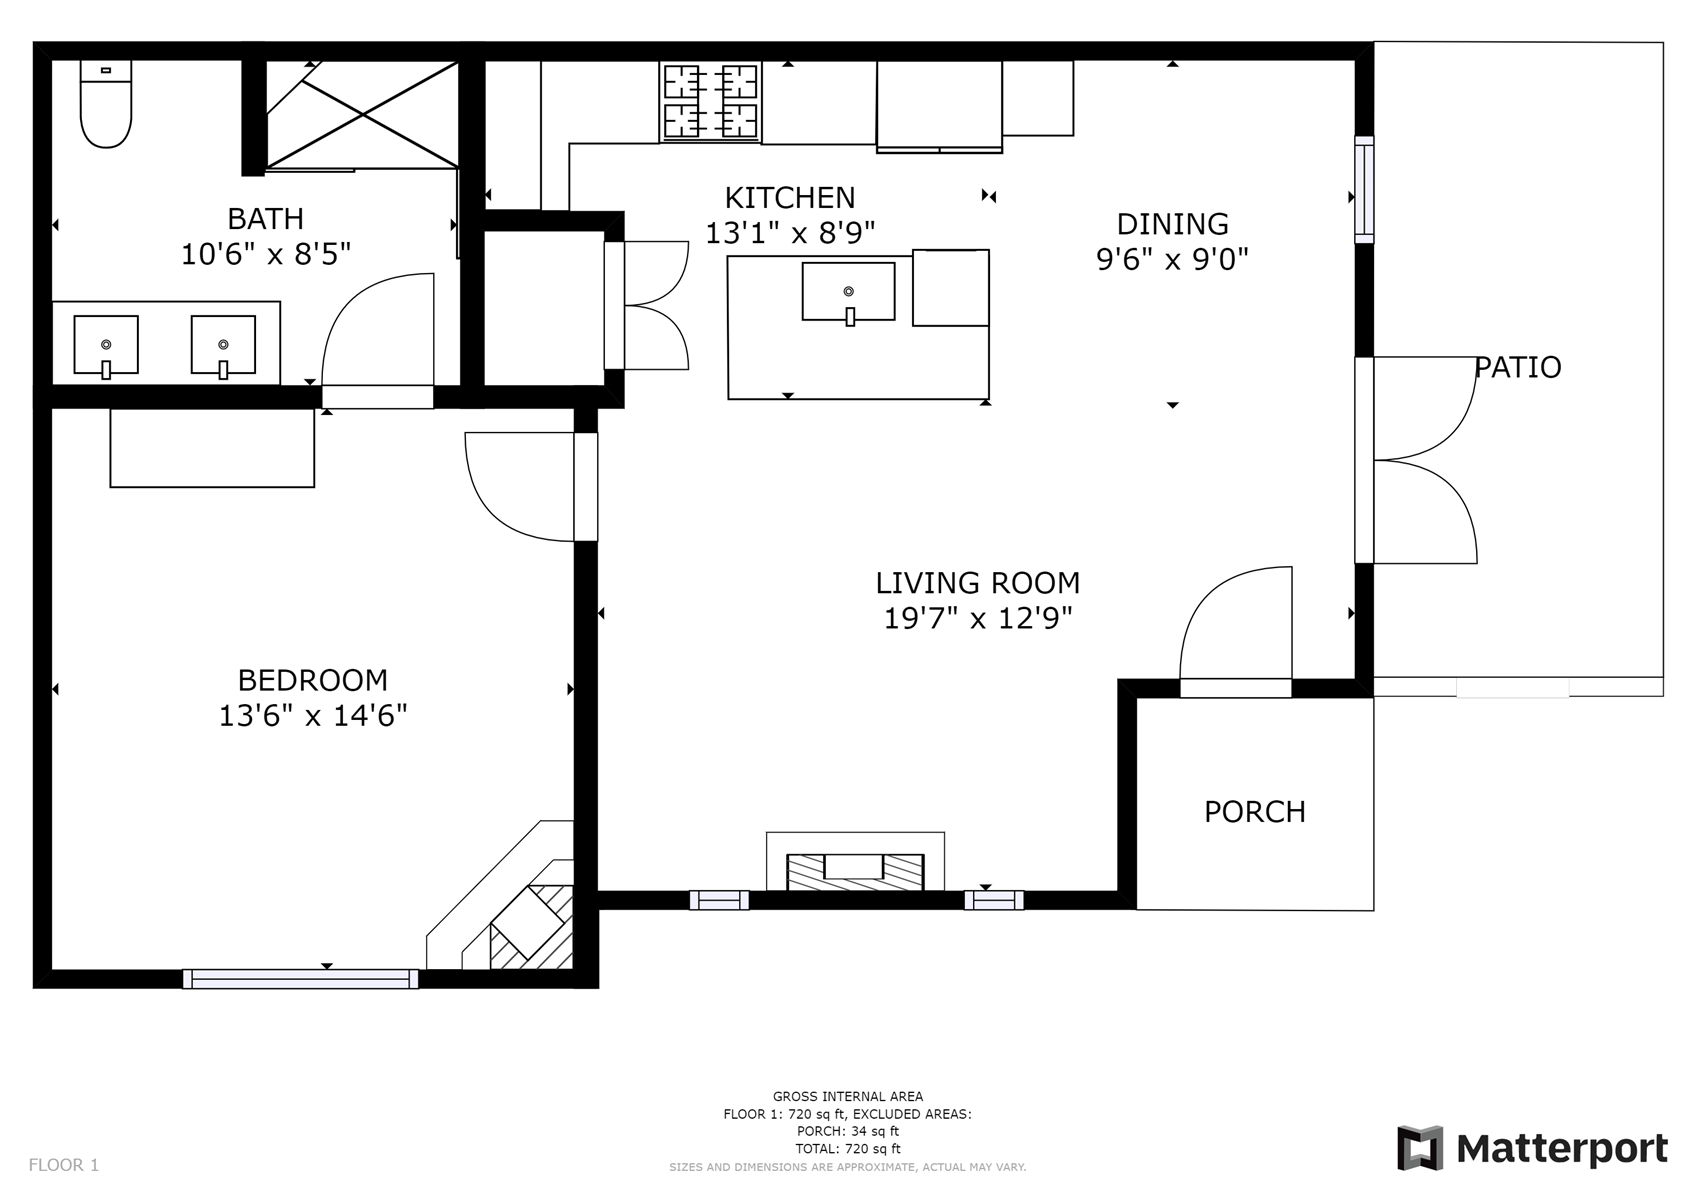 Floor Plan for Delgado C3 - 1 Bed / 1 Bath, Luxury Casita